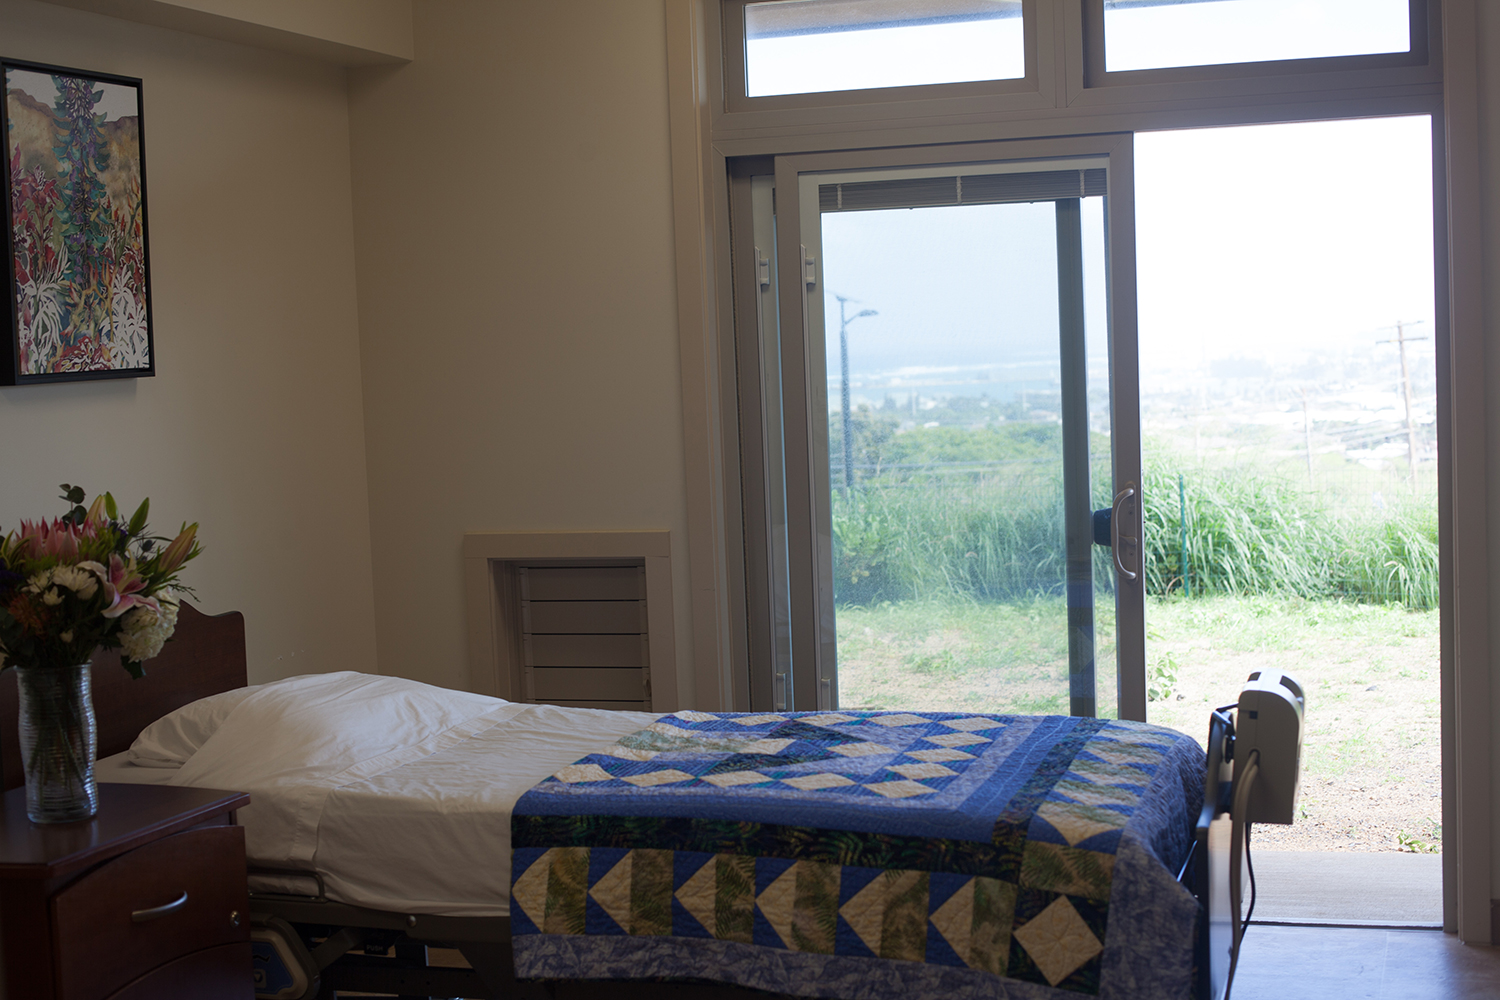 Patient Bedroom with a View